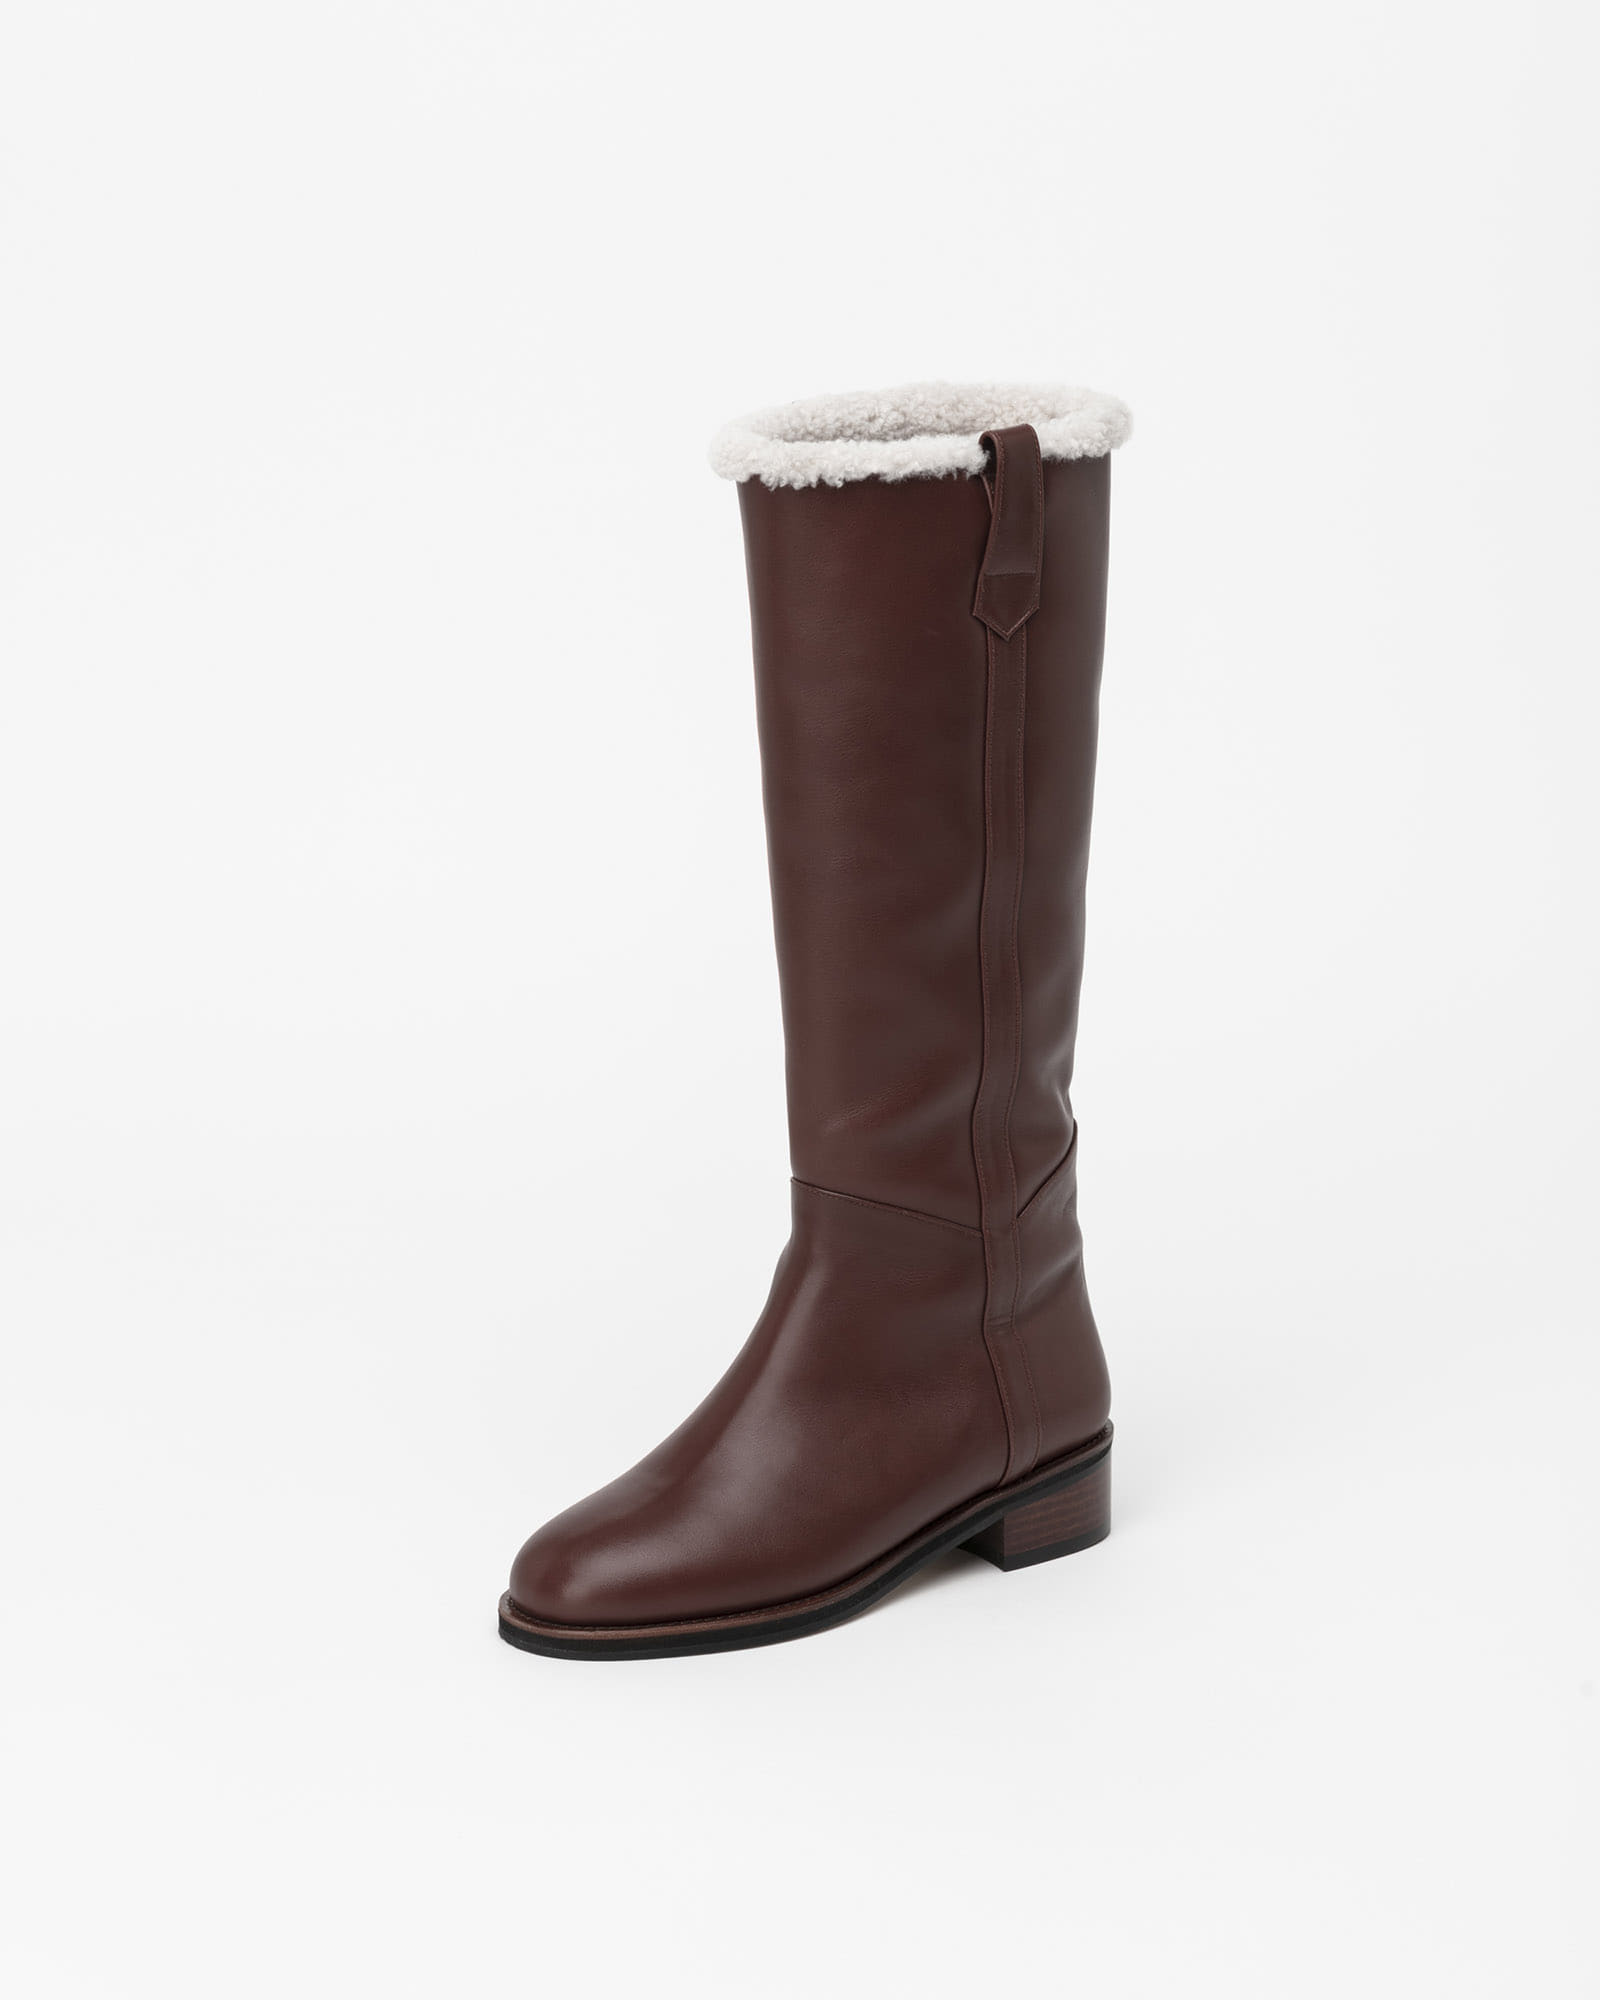 Polaran Fur Lining Boots in Brown